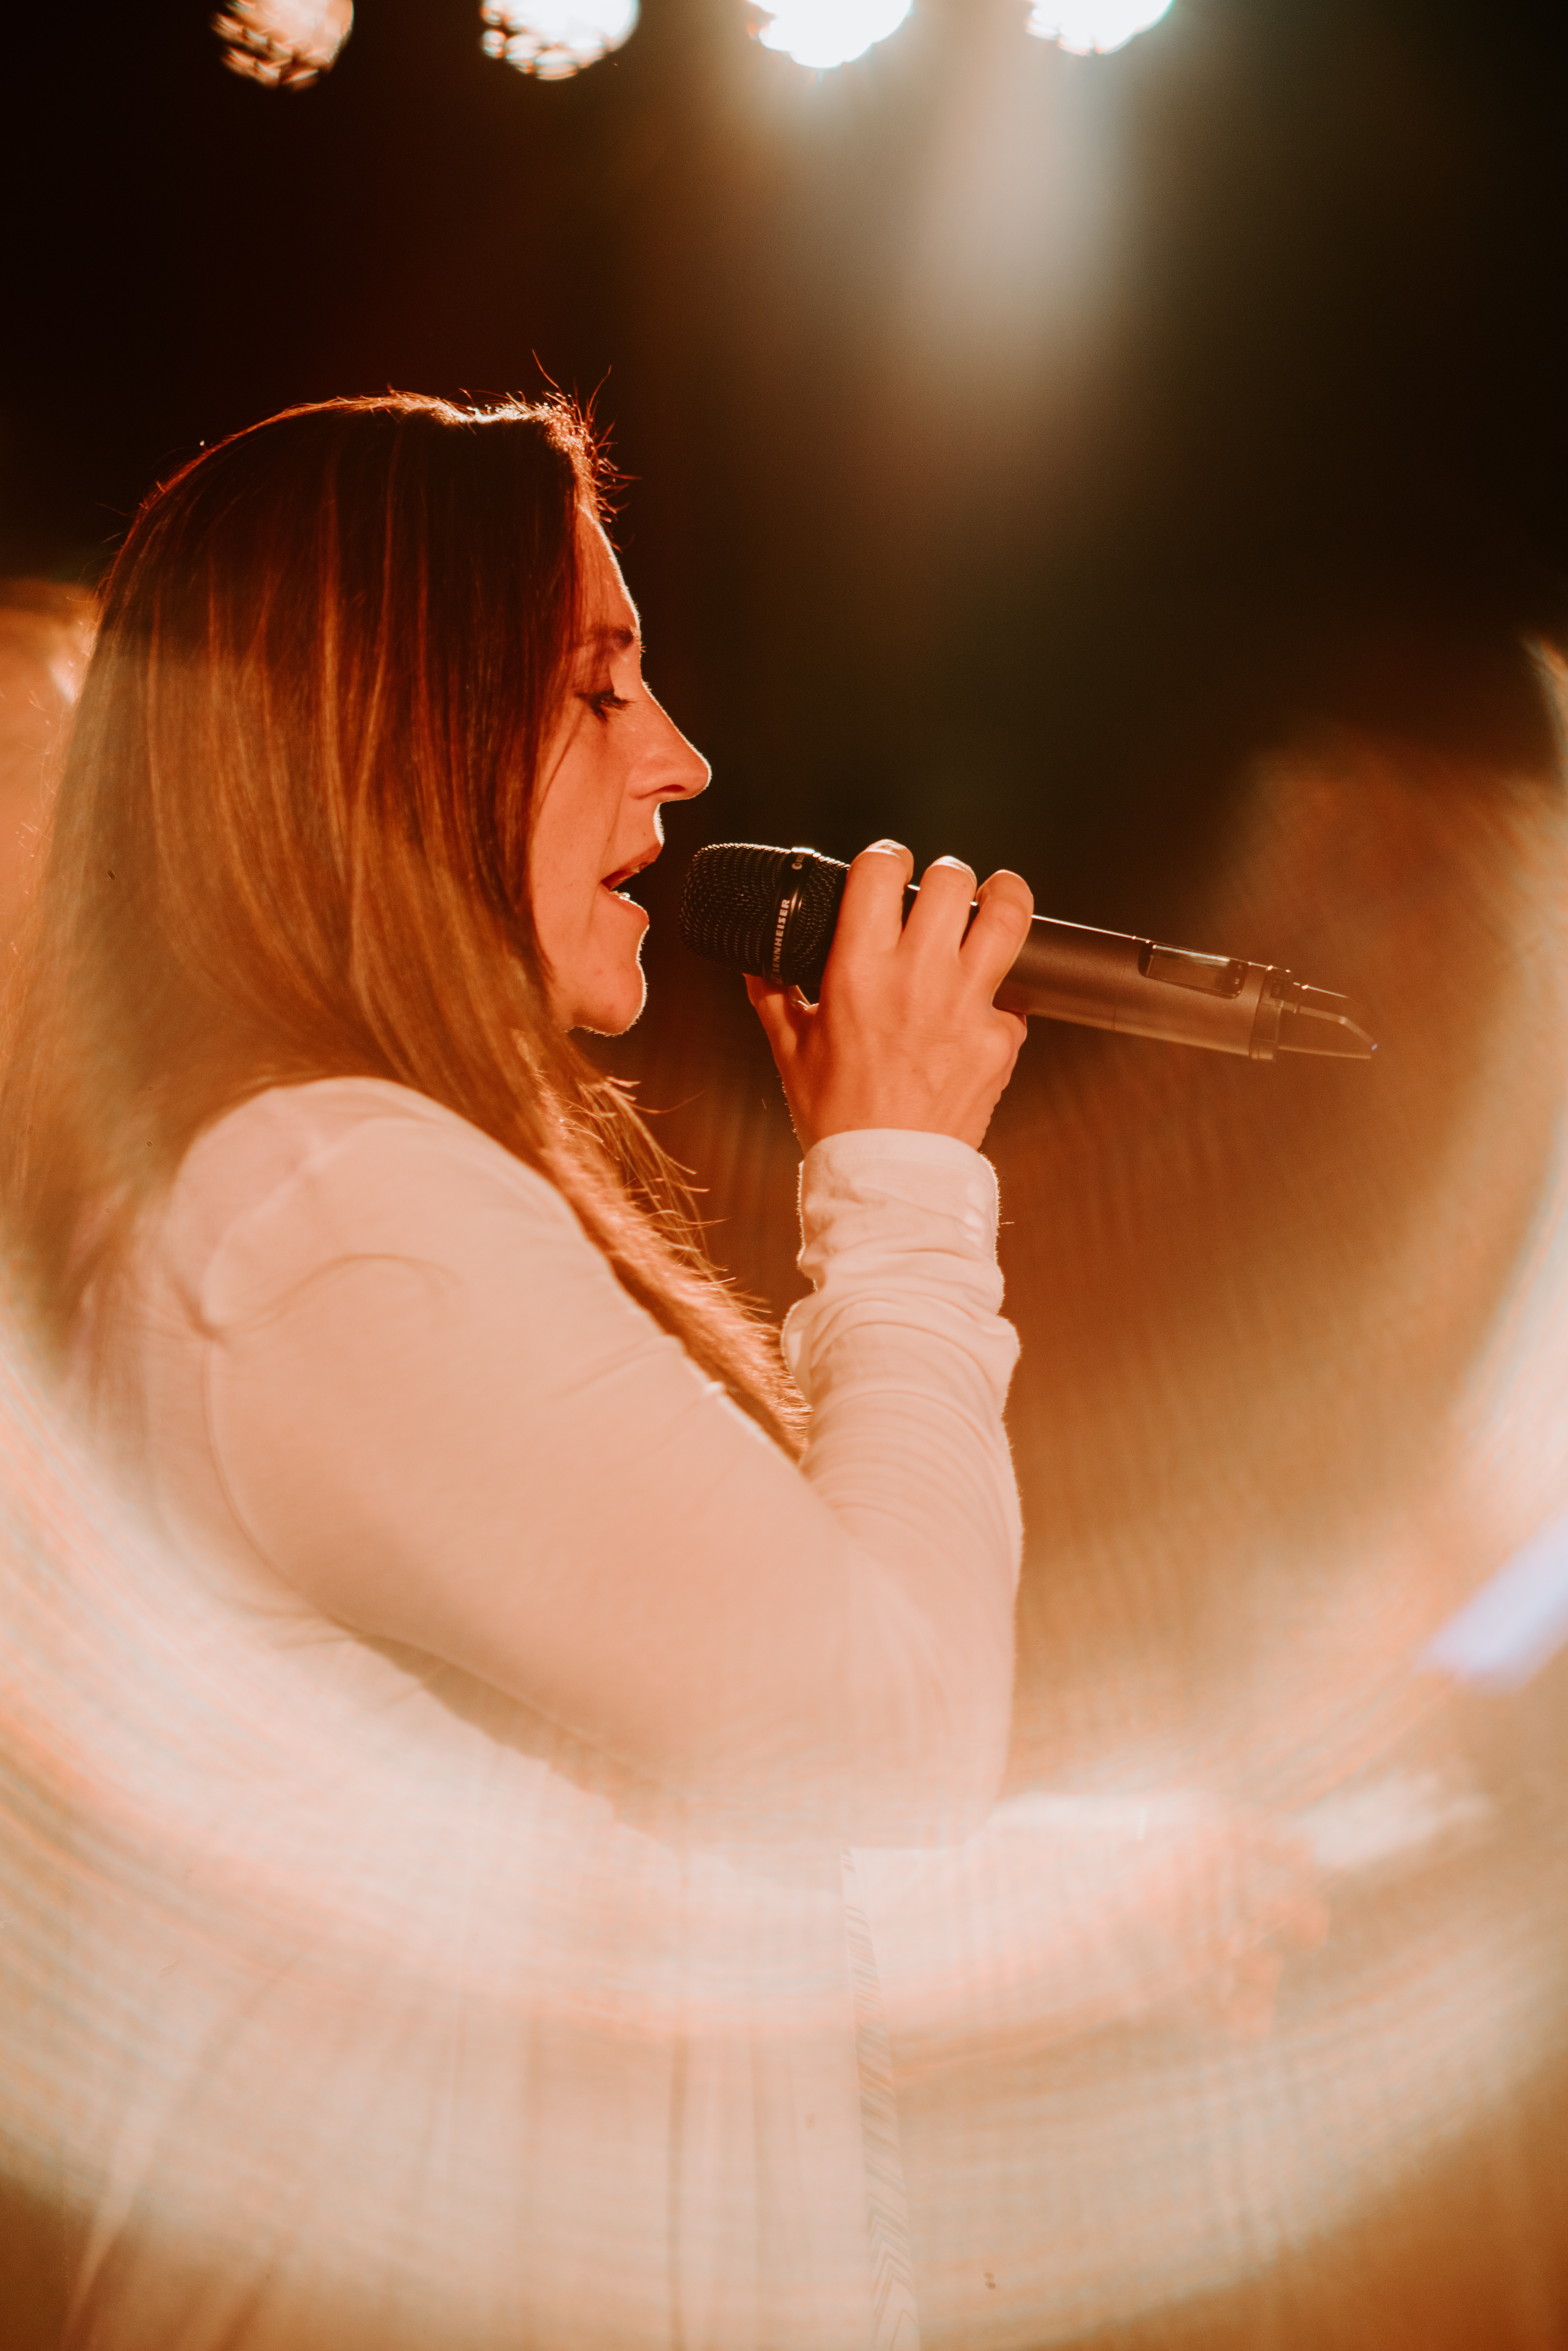 woman holding microphone while singing on stage